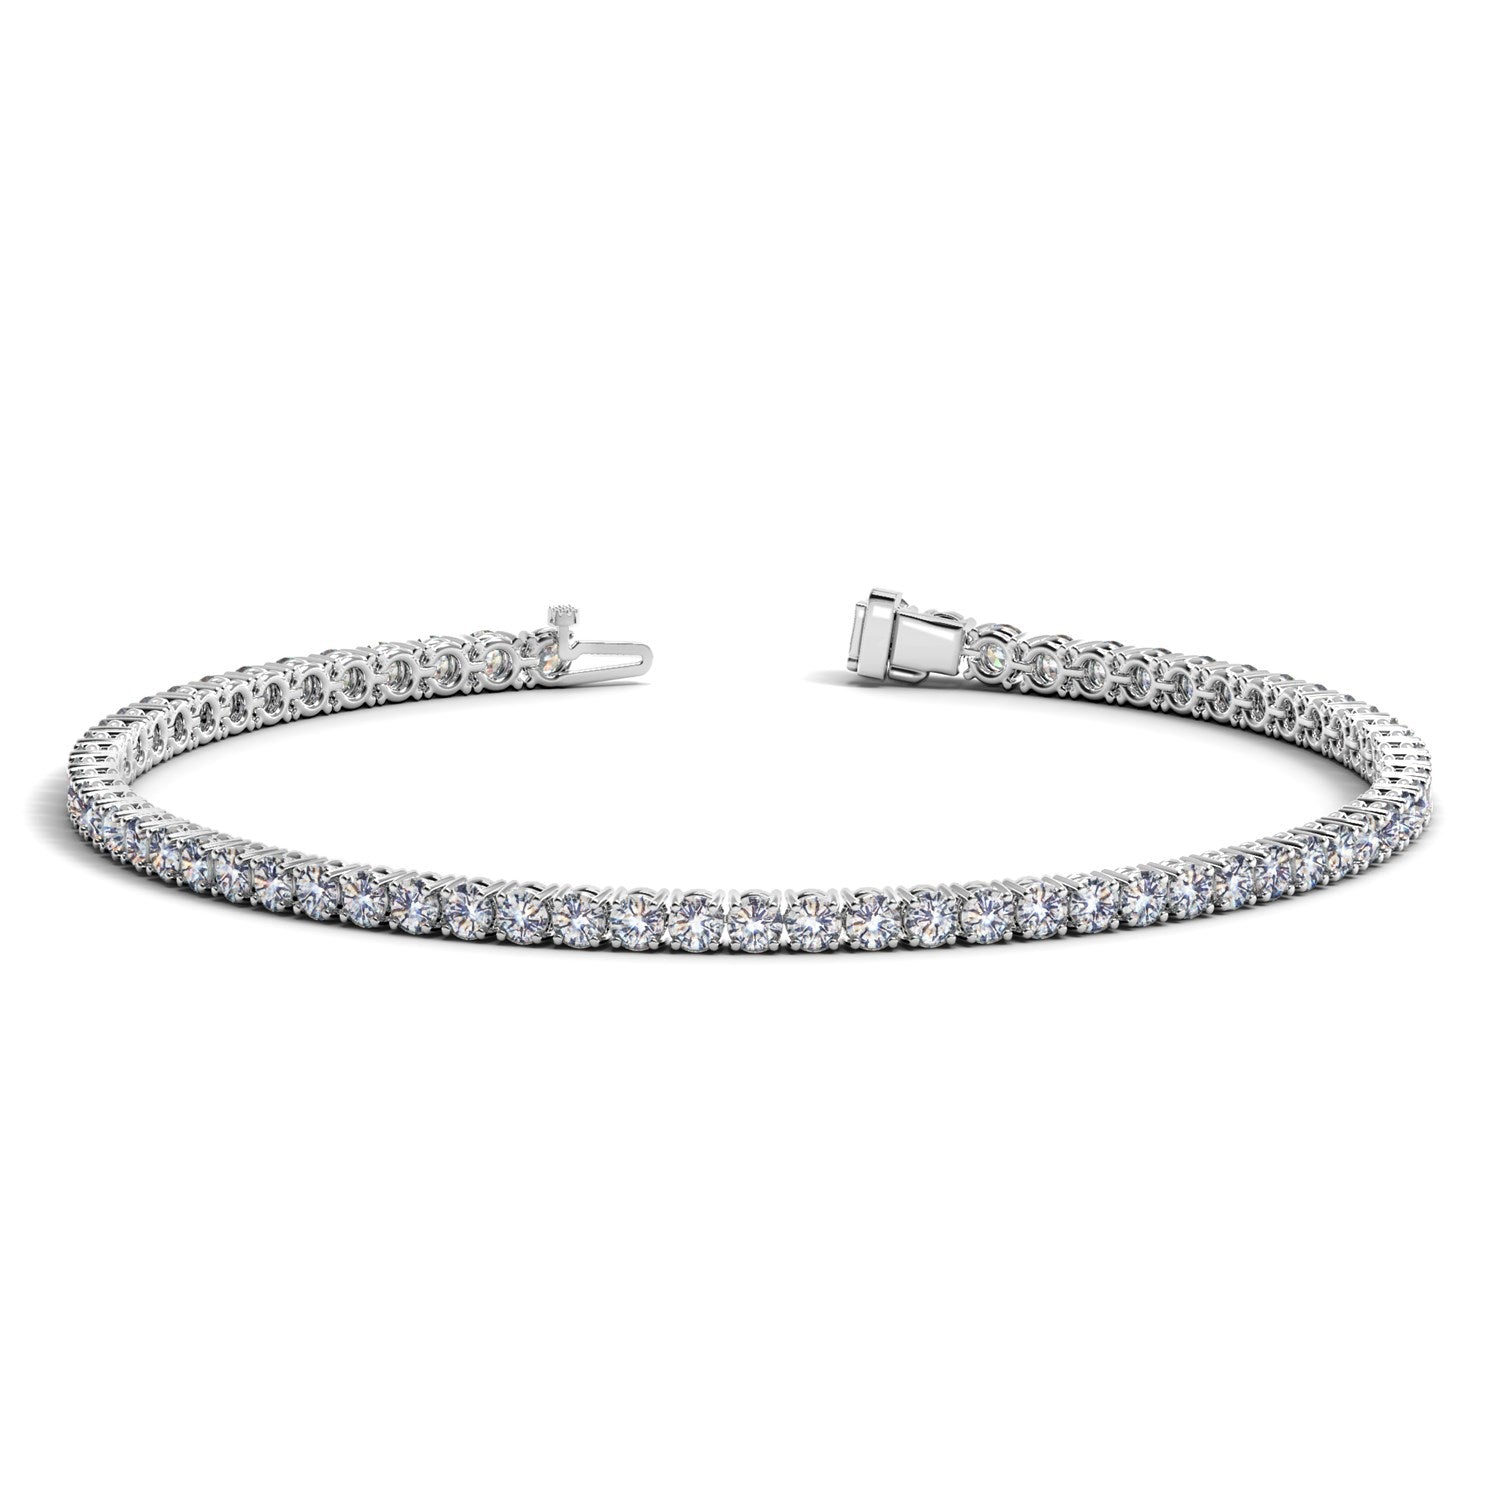 Unique Modern Monaco Style 14K White Gold Round Diamond Tennis Bracelet (3 ct. tw.)